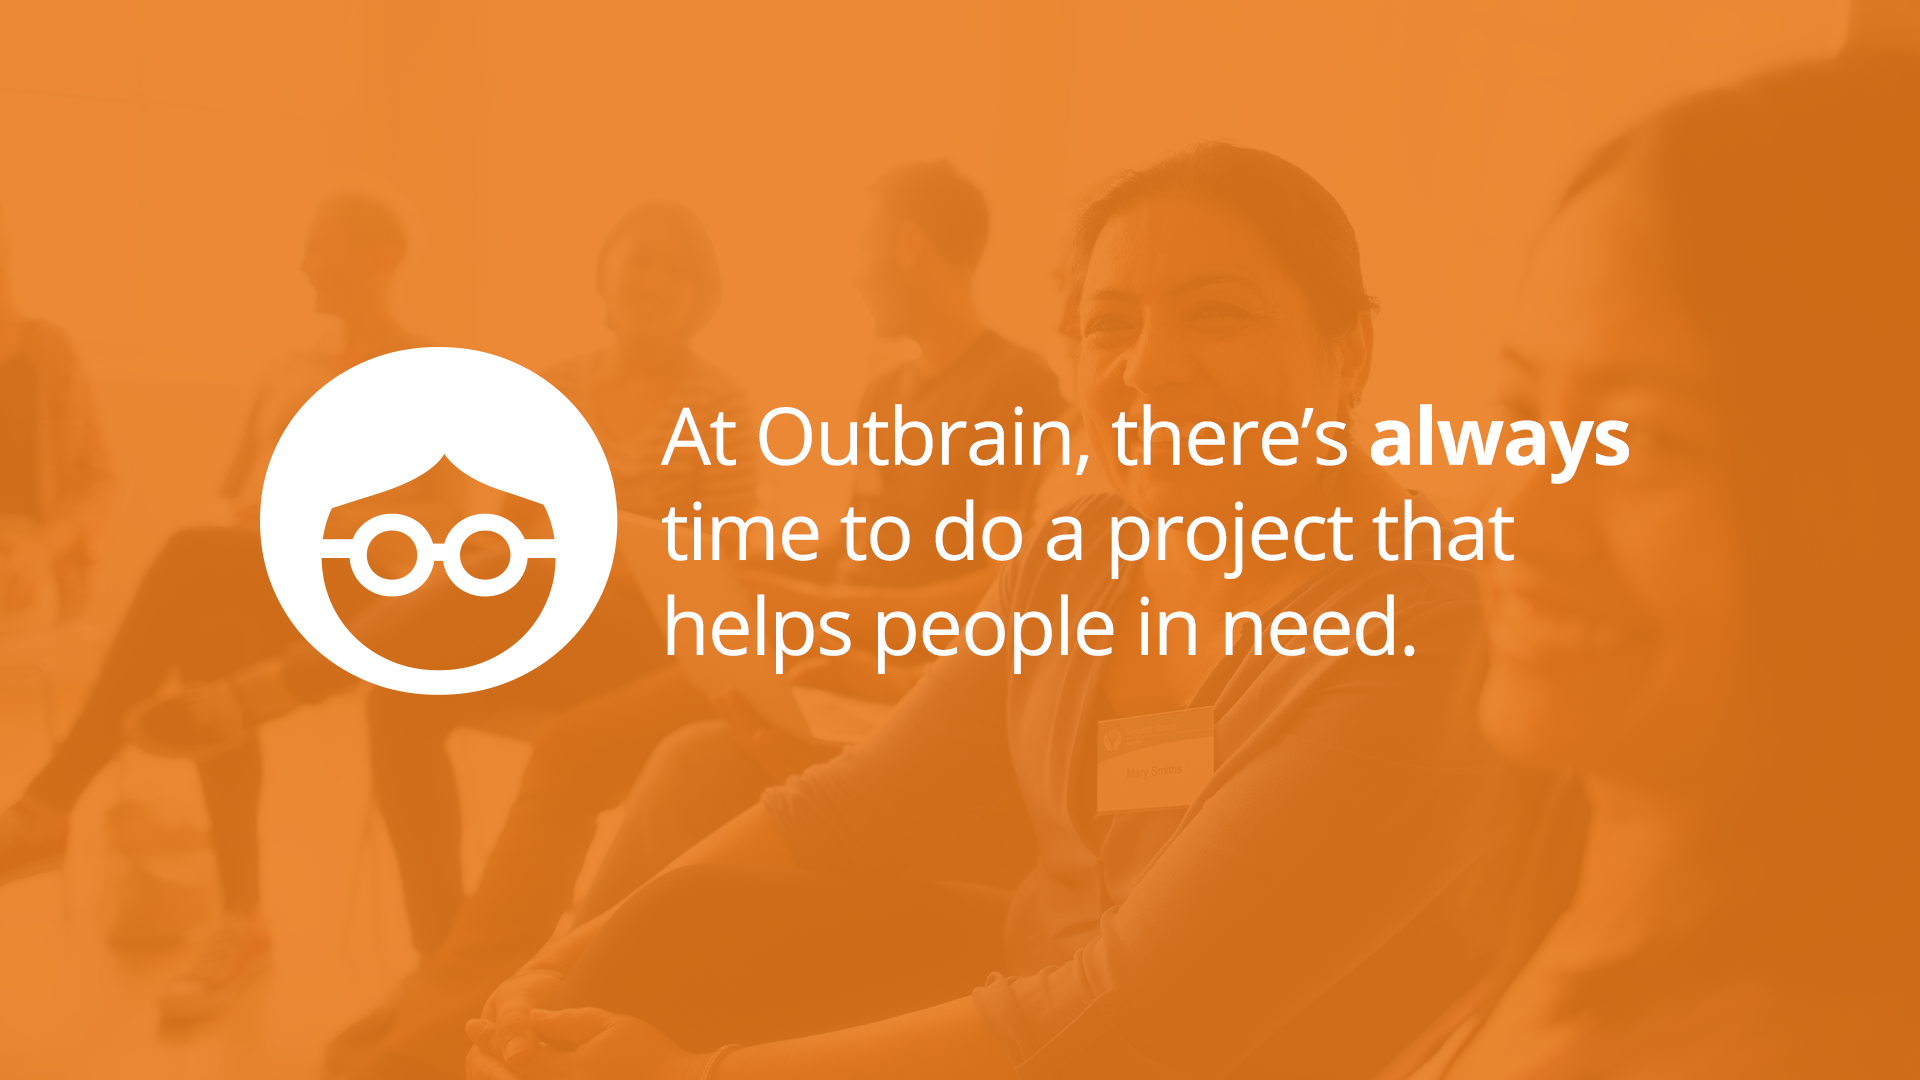 Happy Holidays, From Outbrain